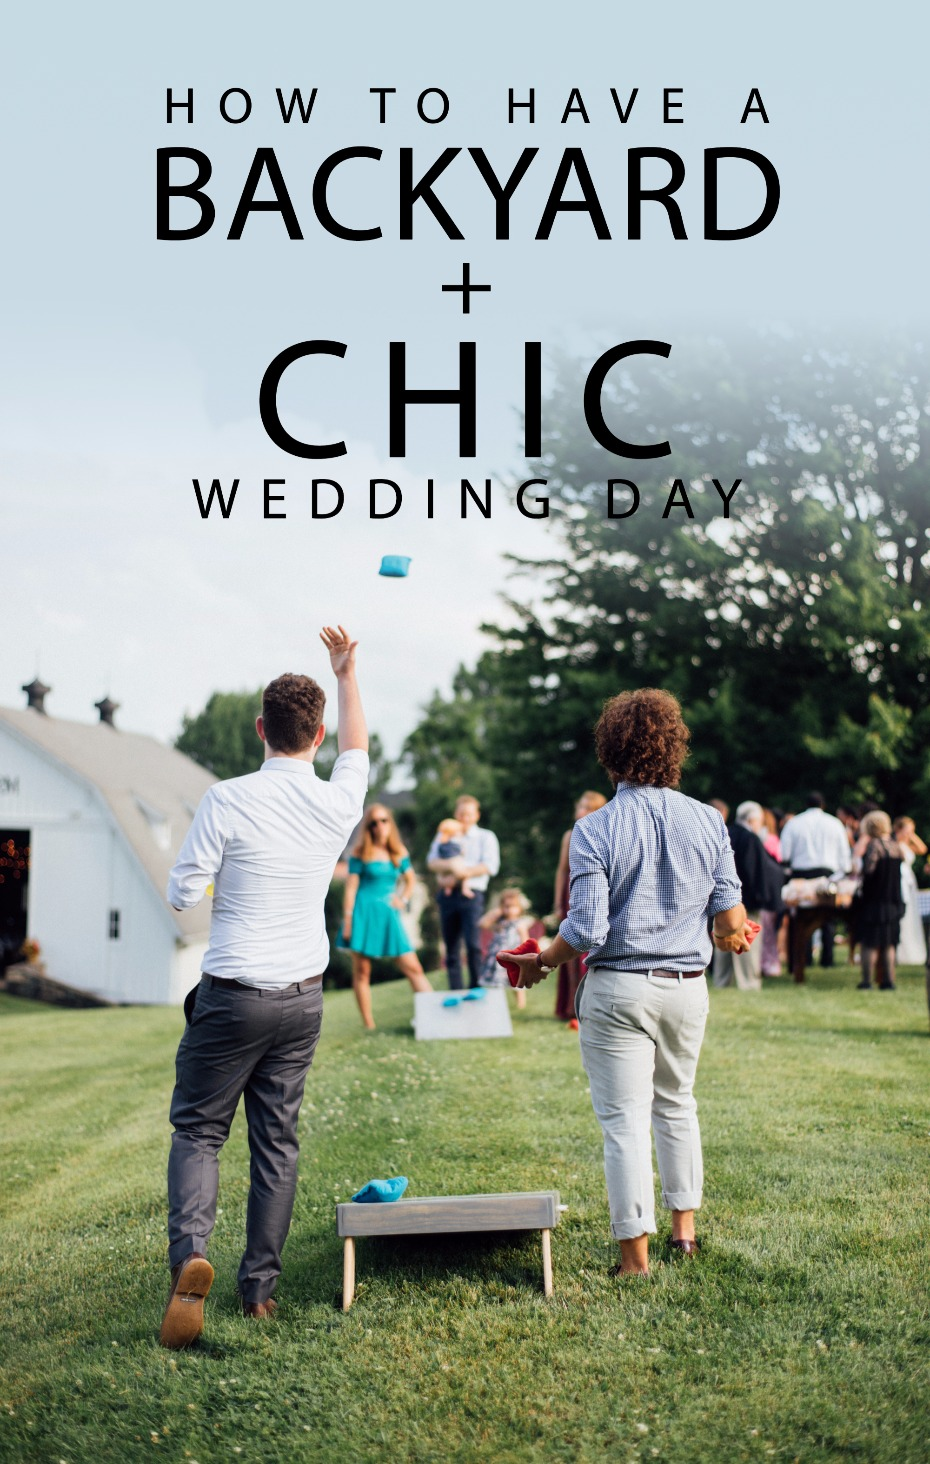 how to have a backyard chic wedding day